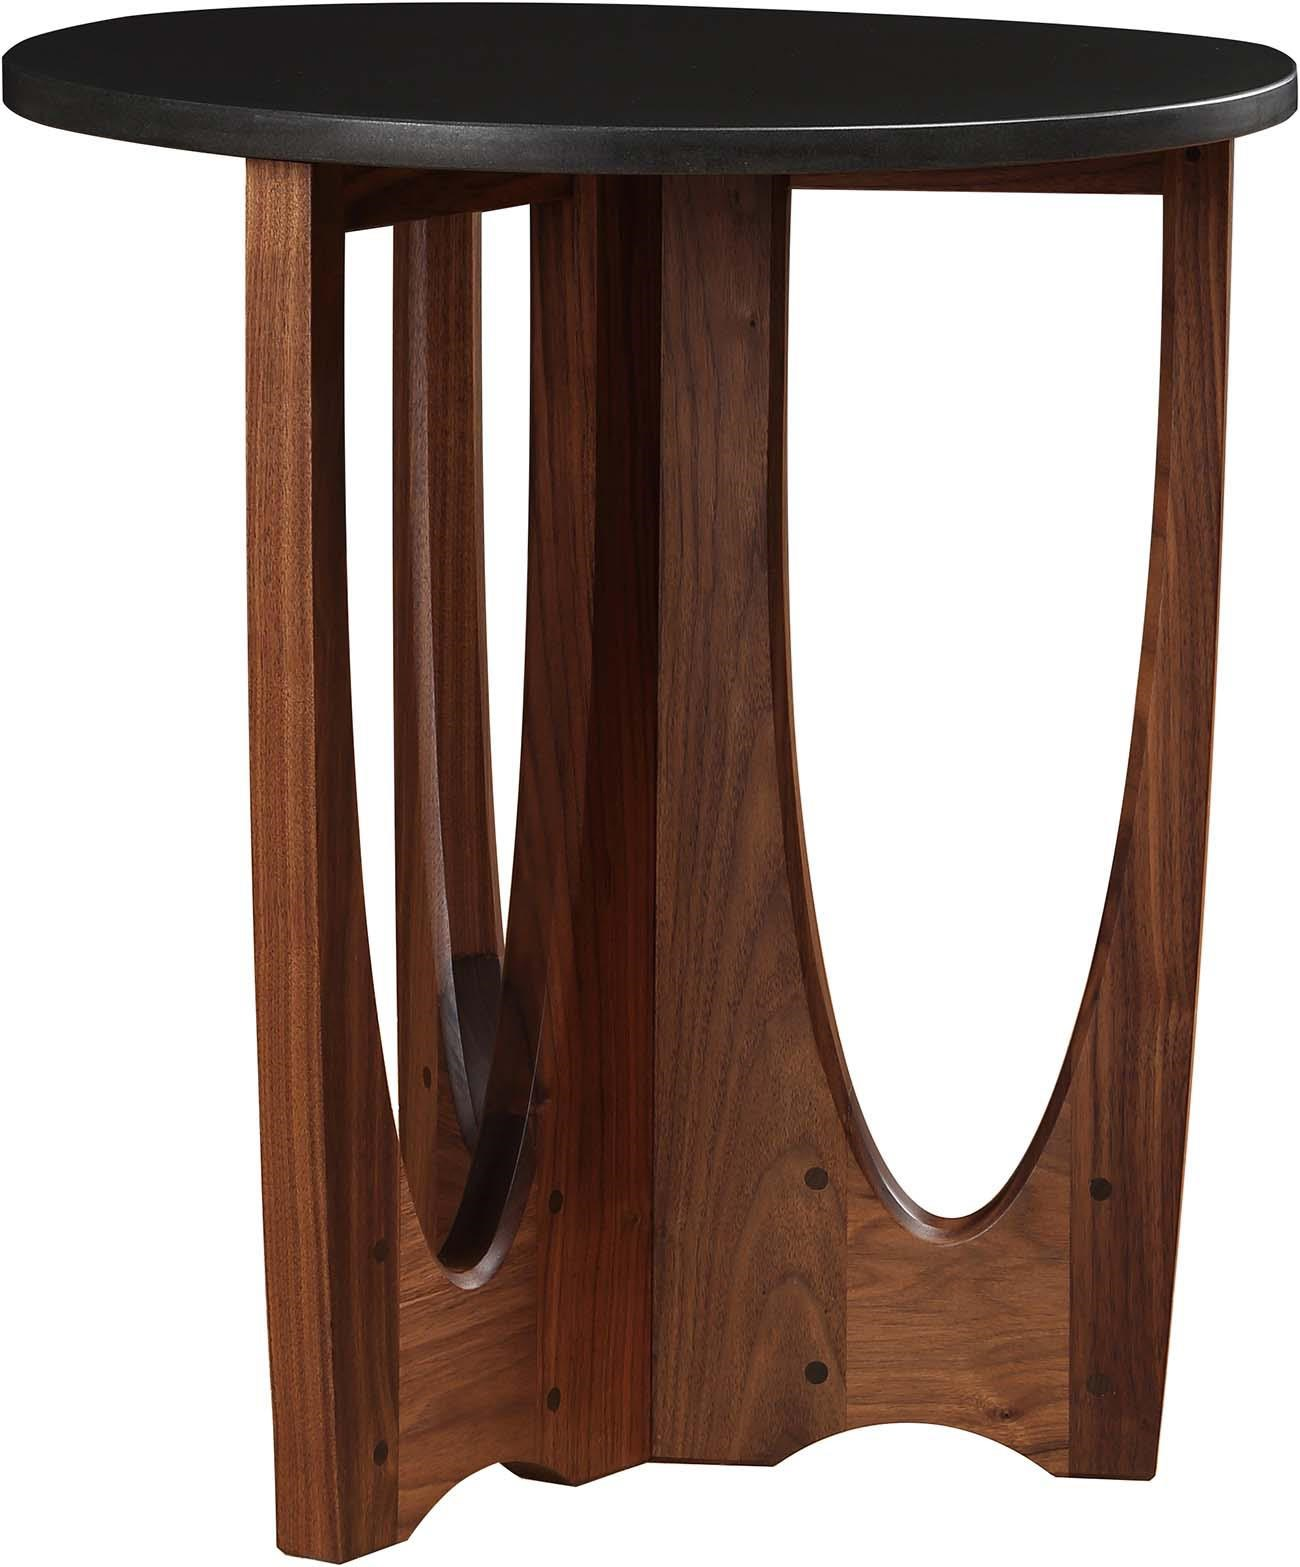 Walnut Grove Drink Table by Stickley at Jacksonville Furniture Mart